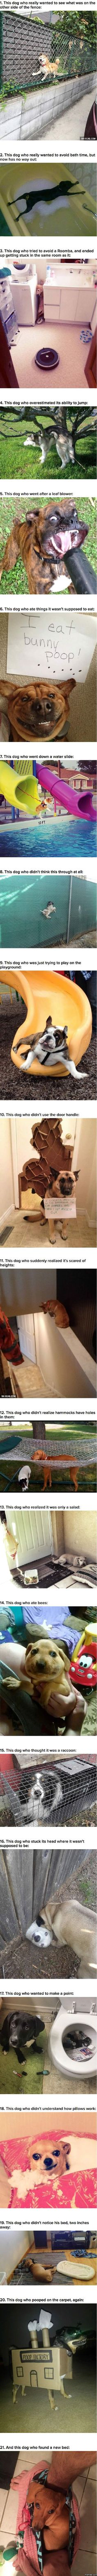 21 Dogs Who Made Poor Life Choices